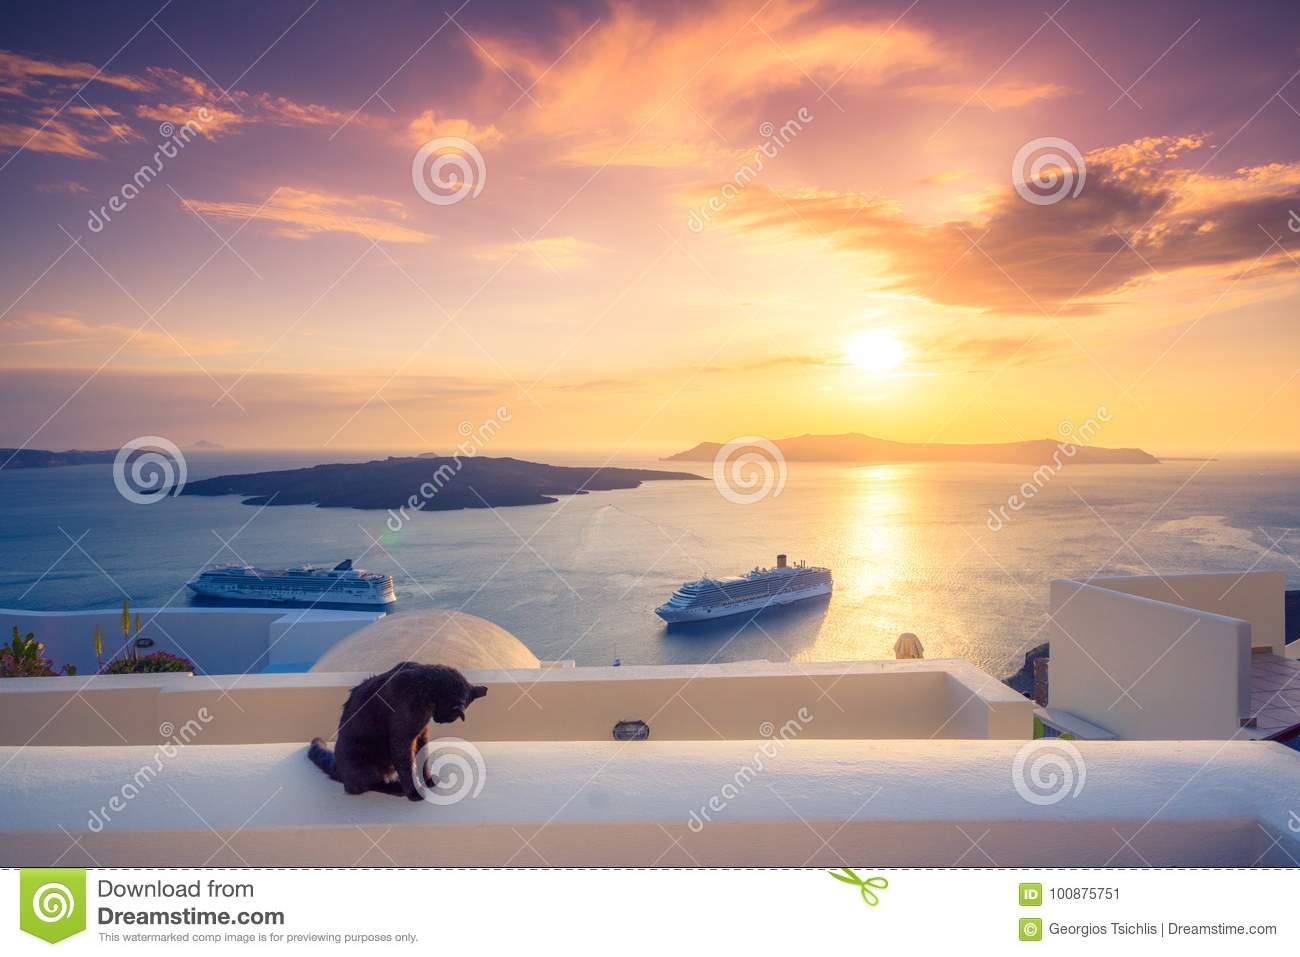 A black cat on a ledge at sunset at Fira town, with view of caldera, volcano and cruise ships, Santorini, Greece.